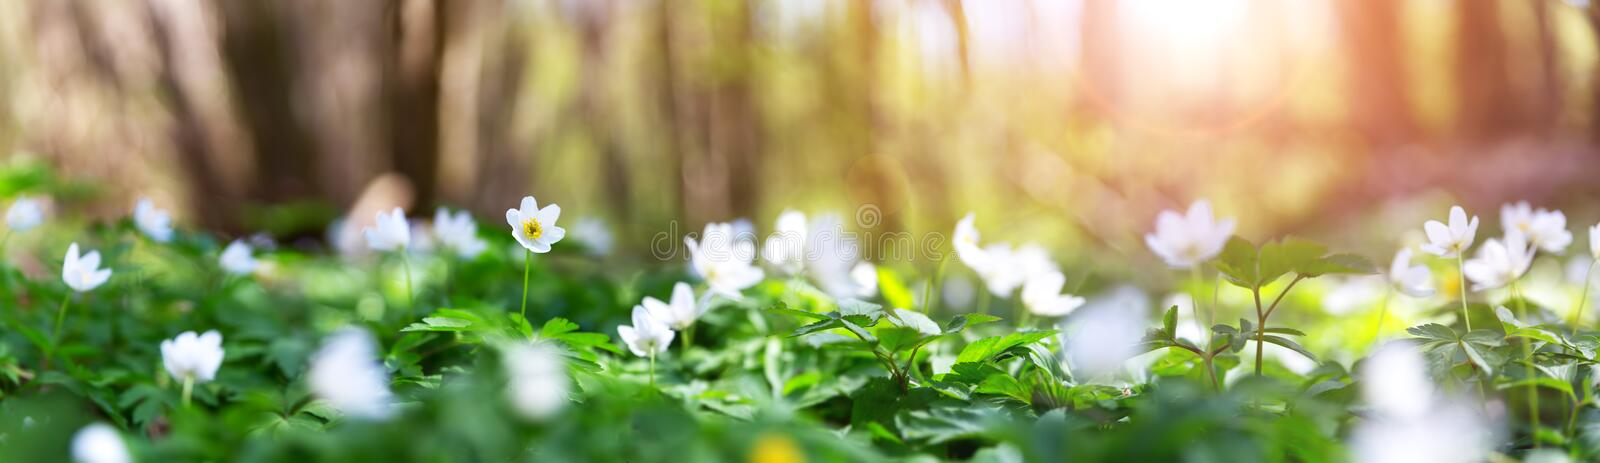 Wood with lots of white spring flowers in sunny day royalty free stock photos